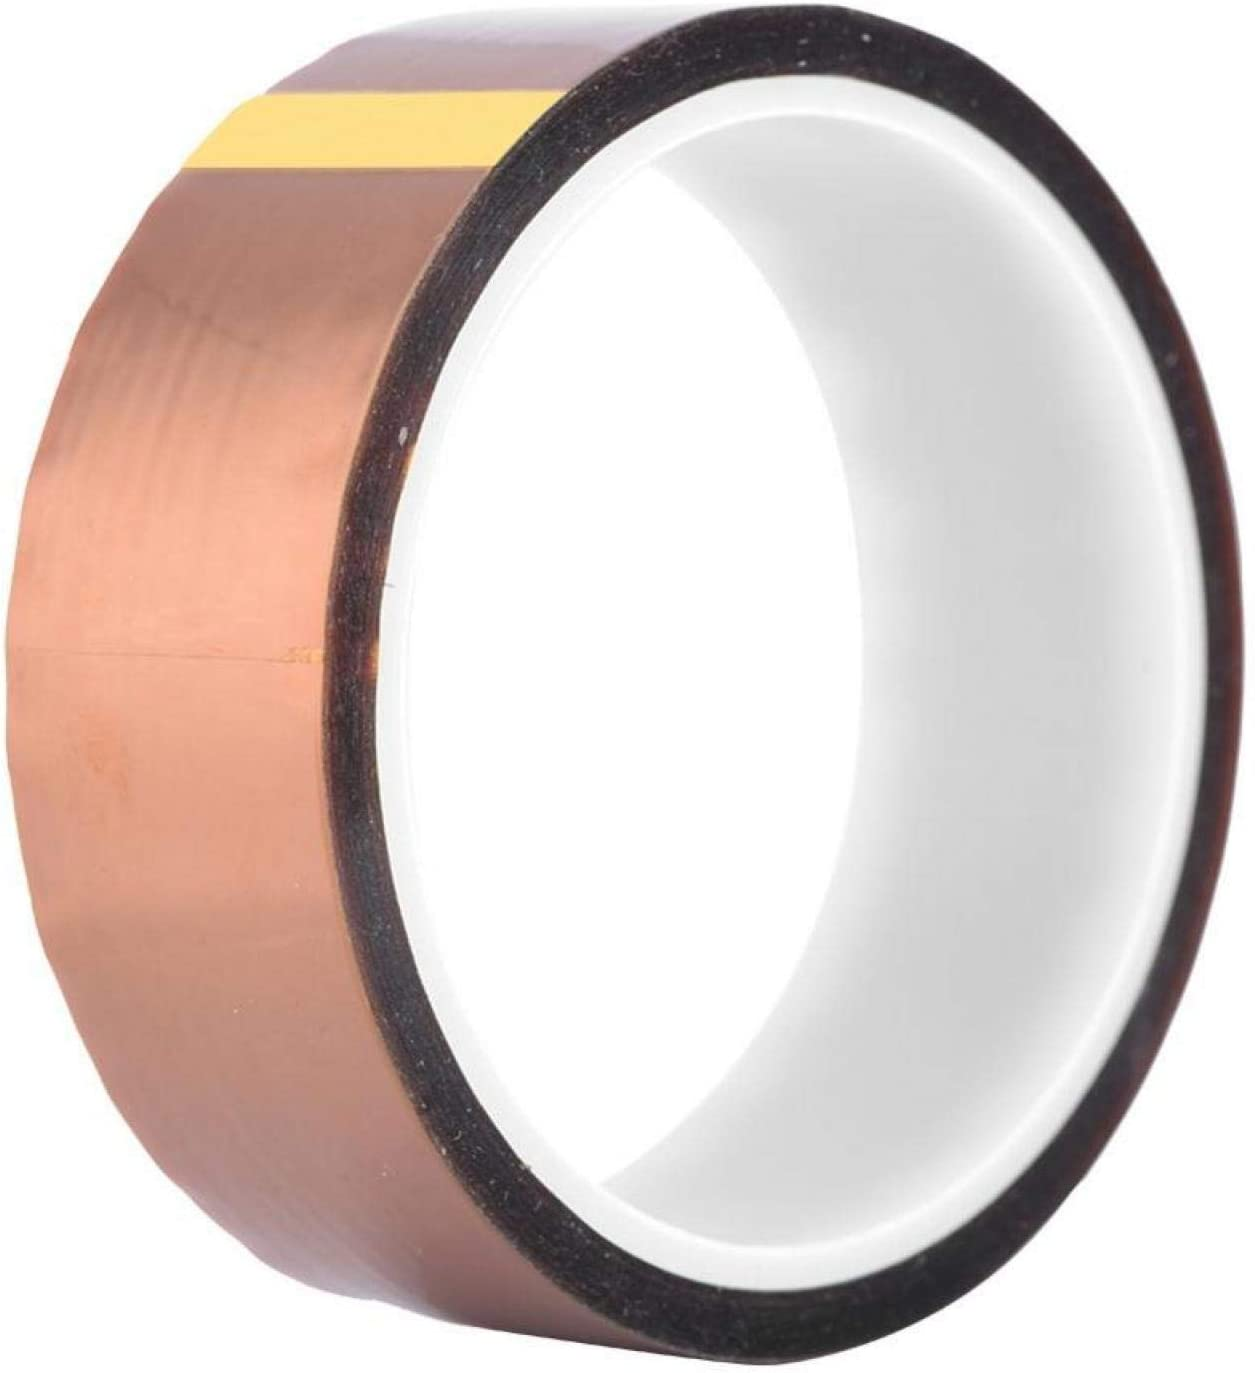 33m0.06mm 250-300 SEAL limited product Heat Resistant Tape Extensibility - 55% OFF Highe High